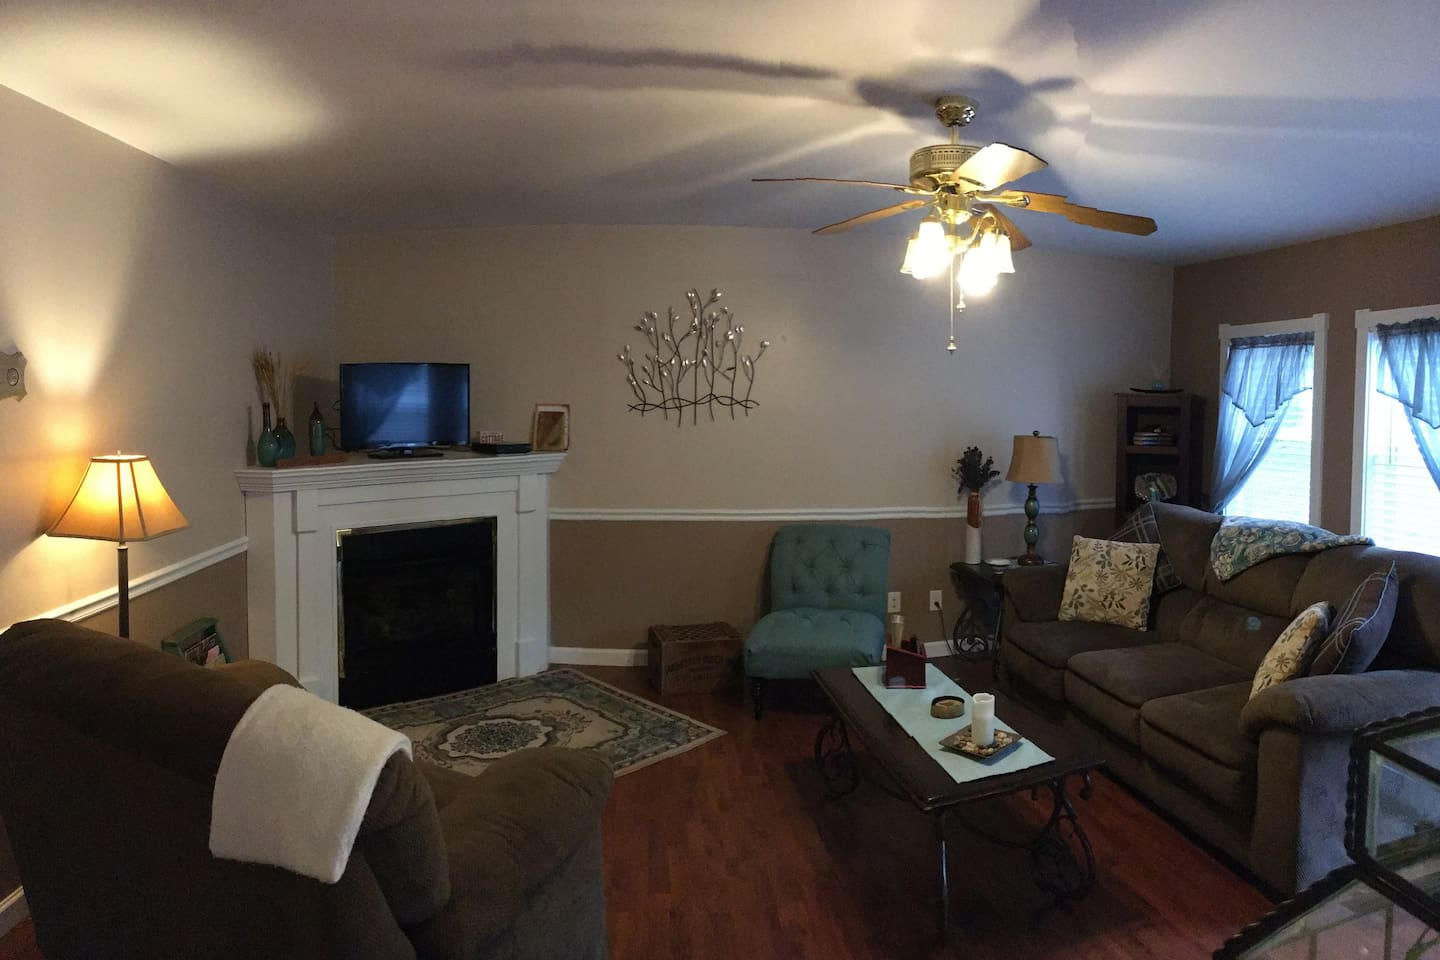 Comfy oversized furniture in living room, great for relaxing